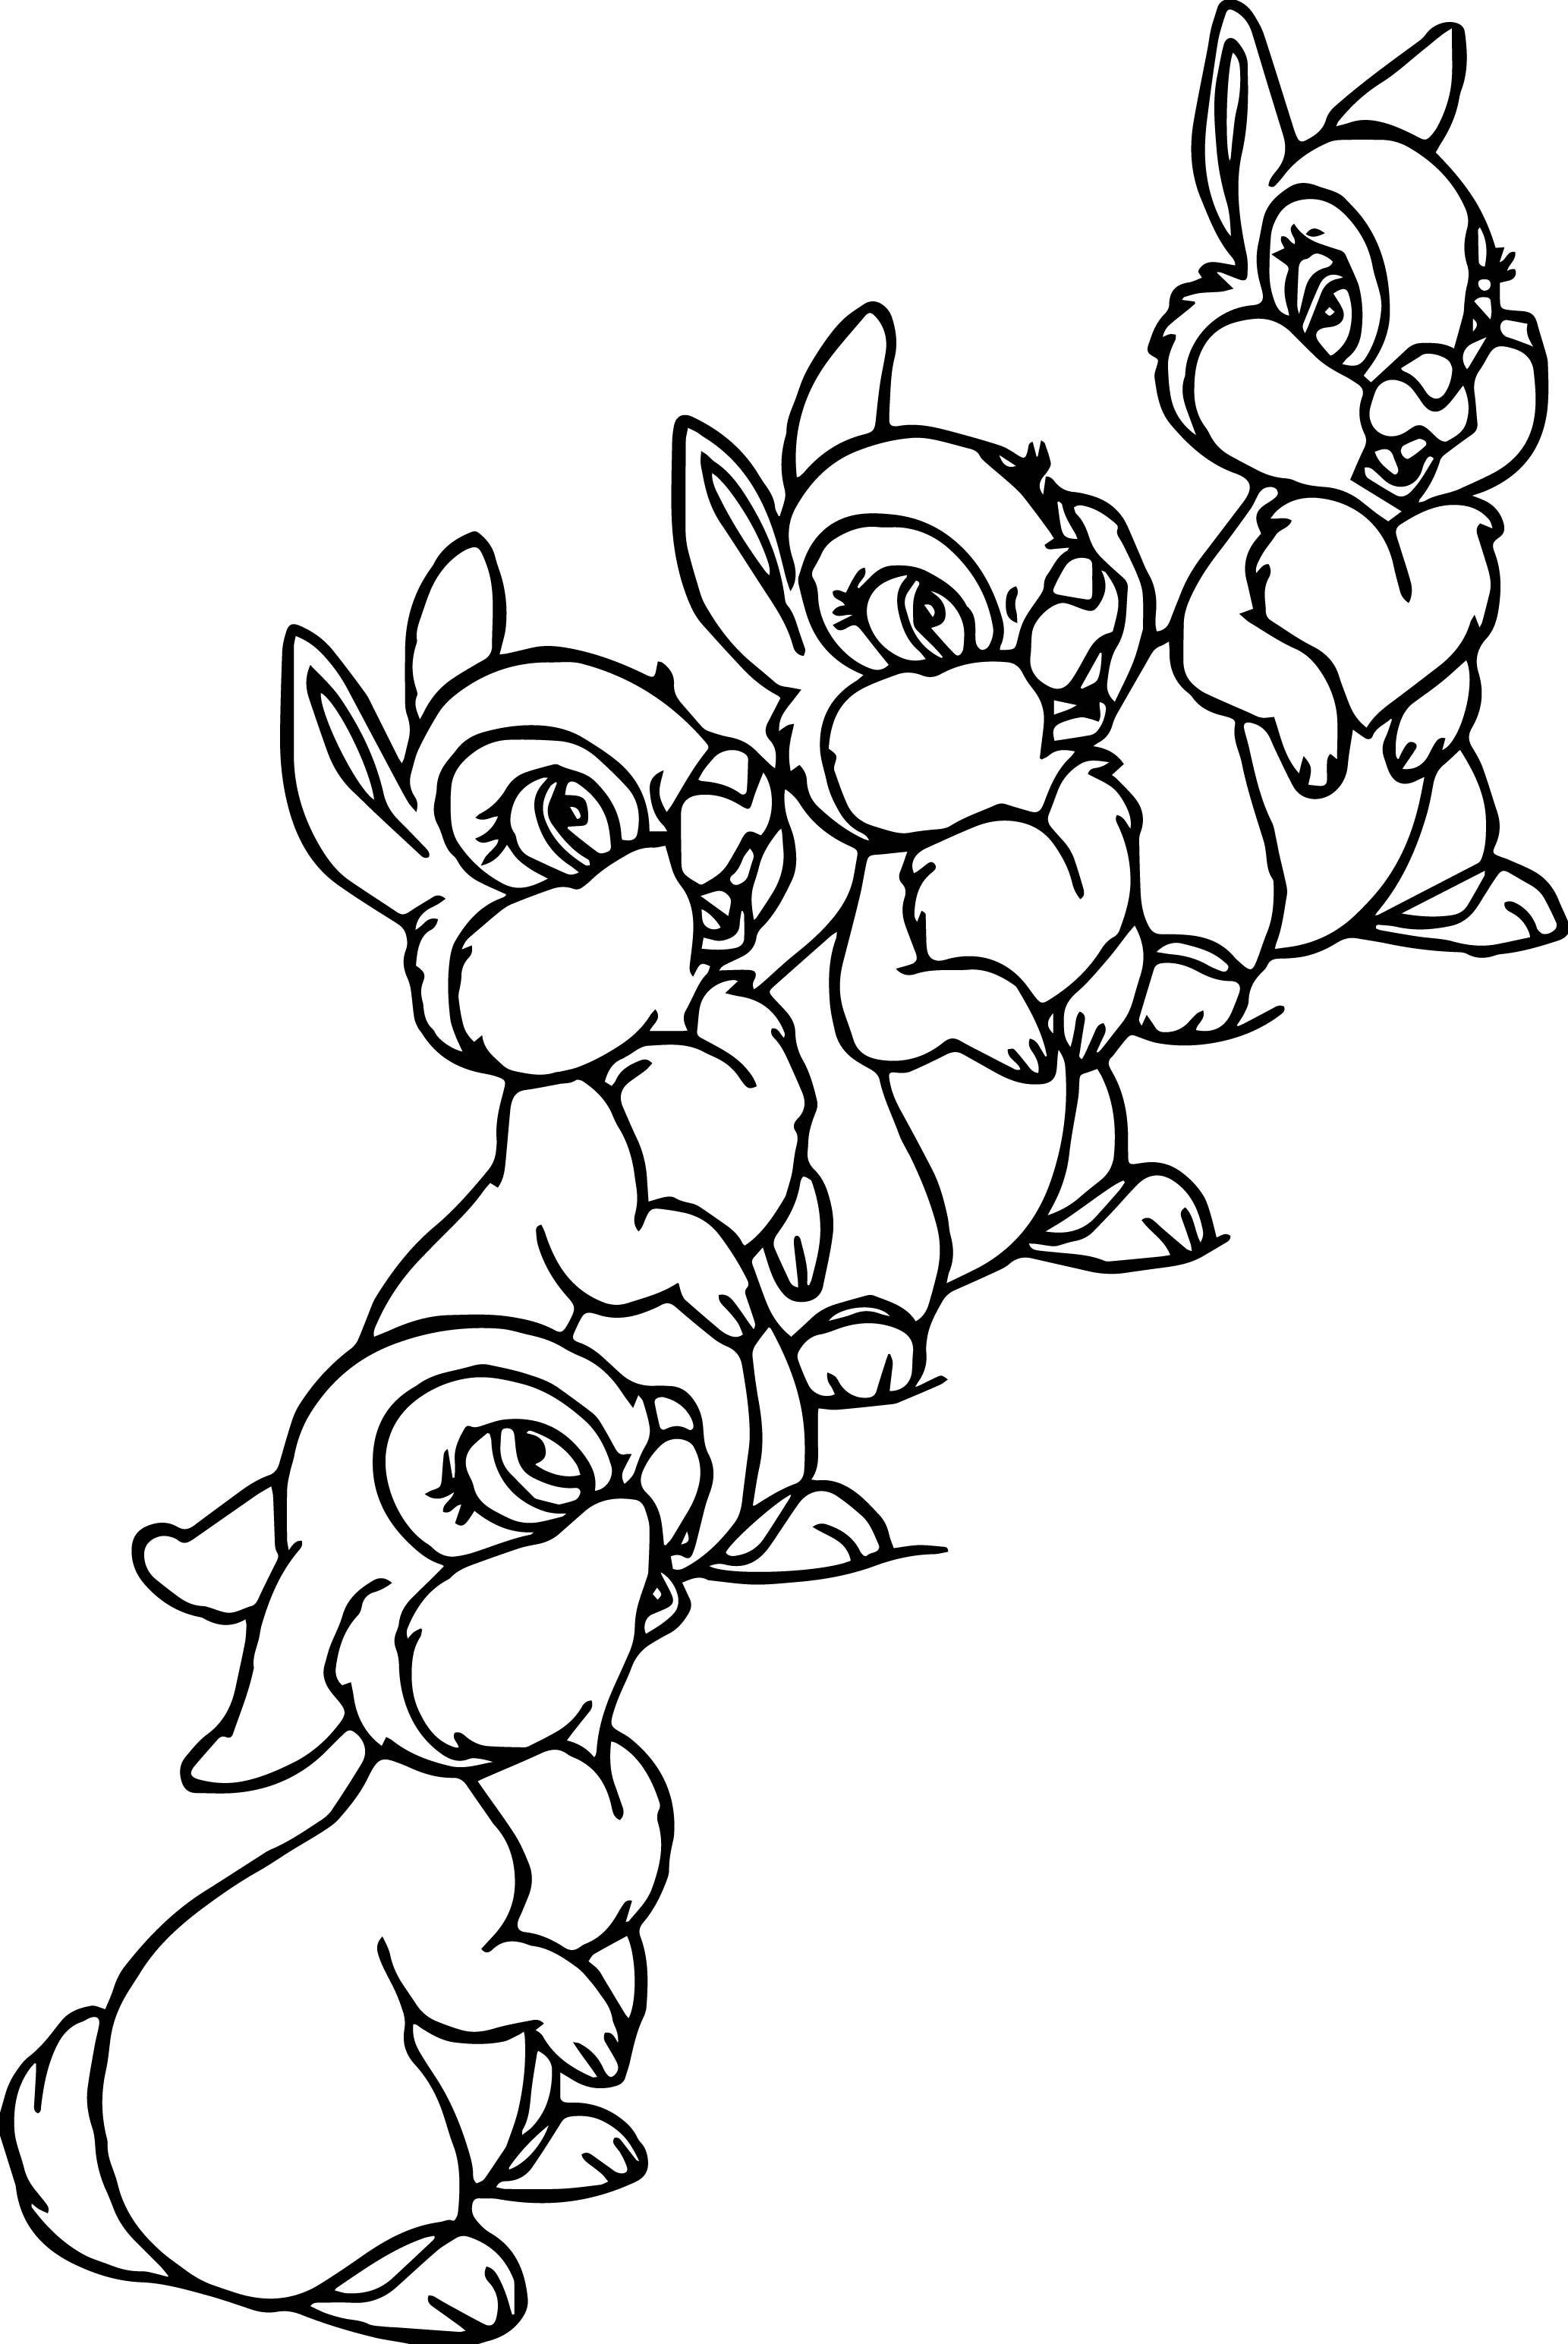 All Thumper Thumpers Sisters And Miss Bunny Coloring Pages